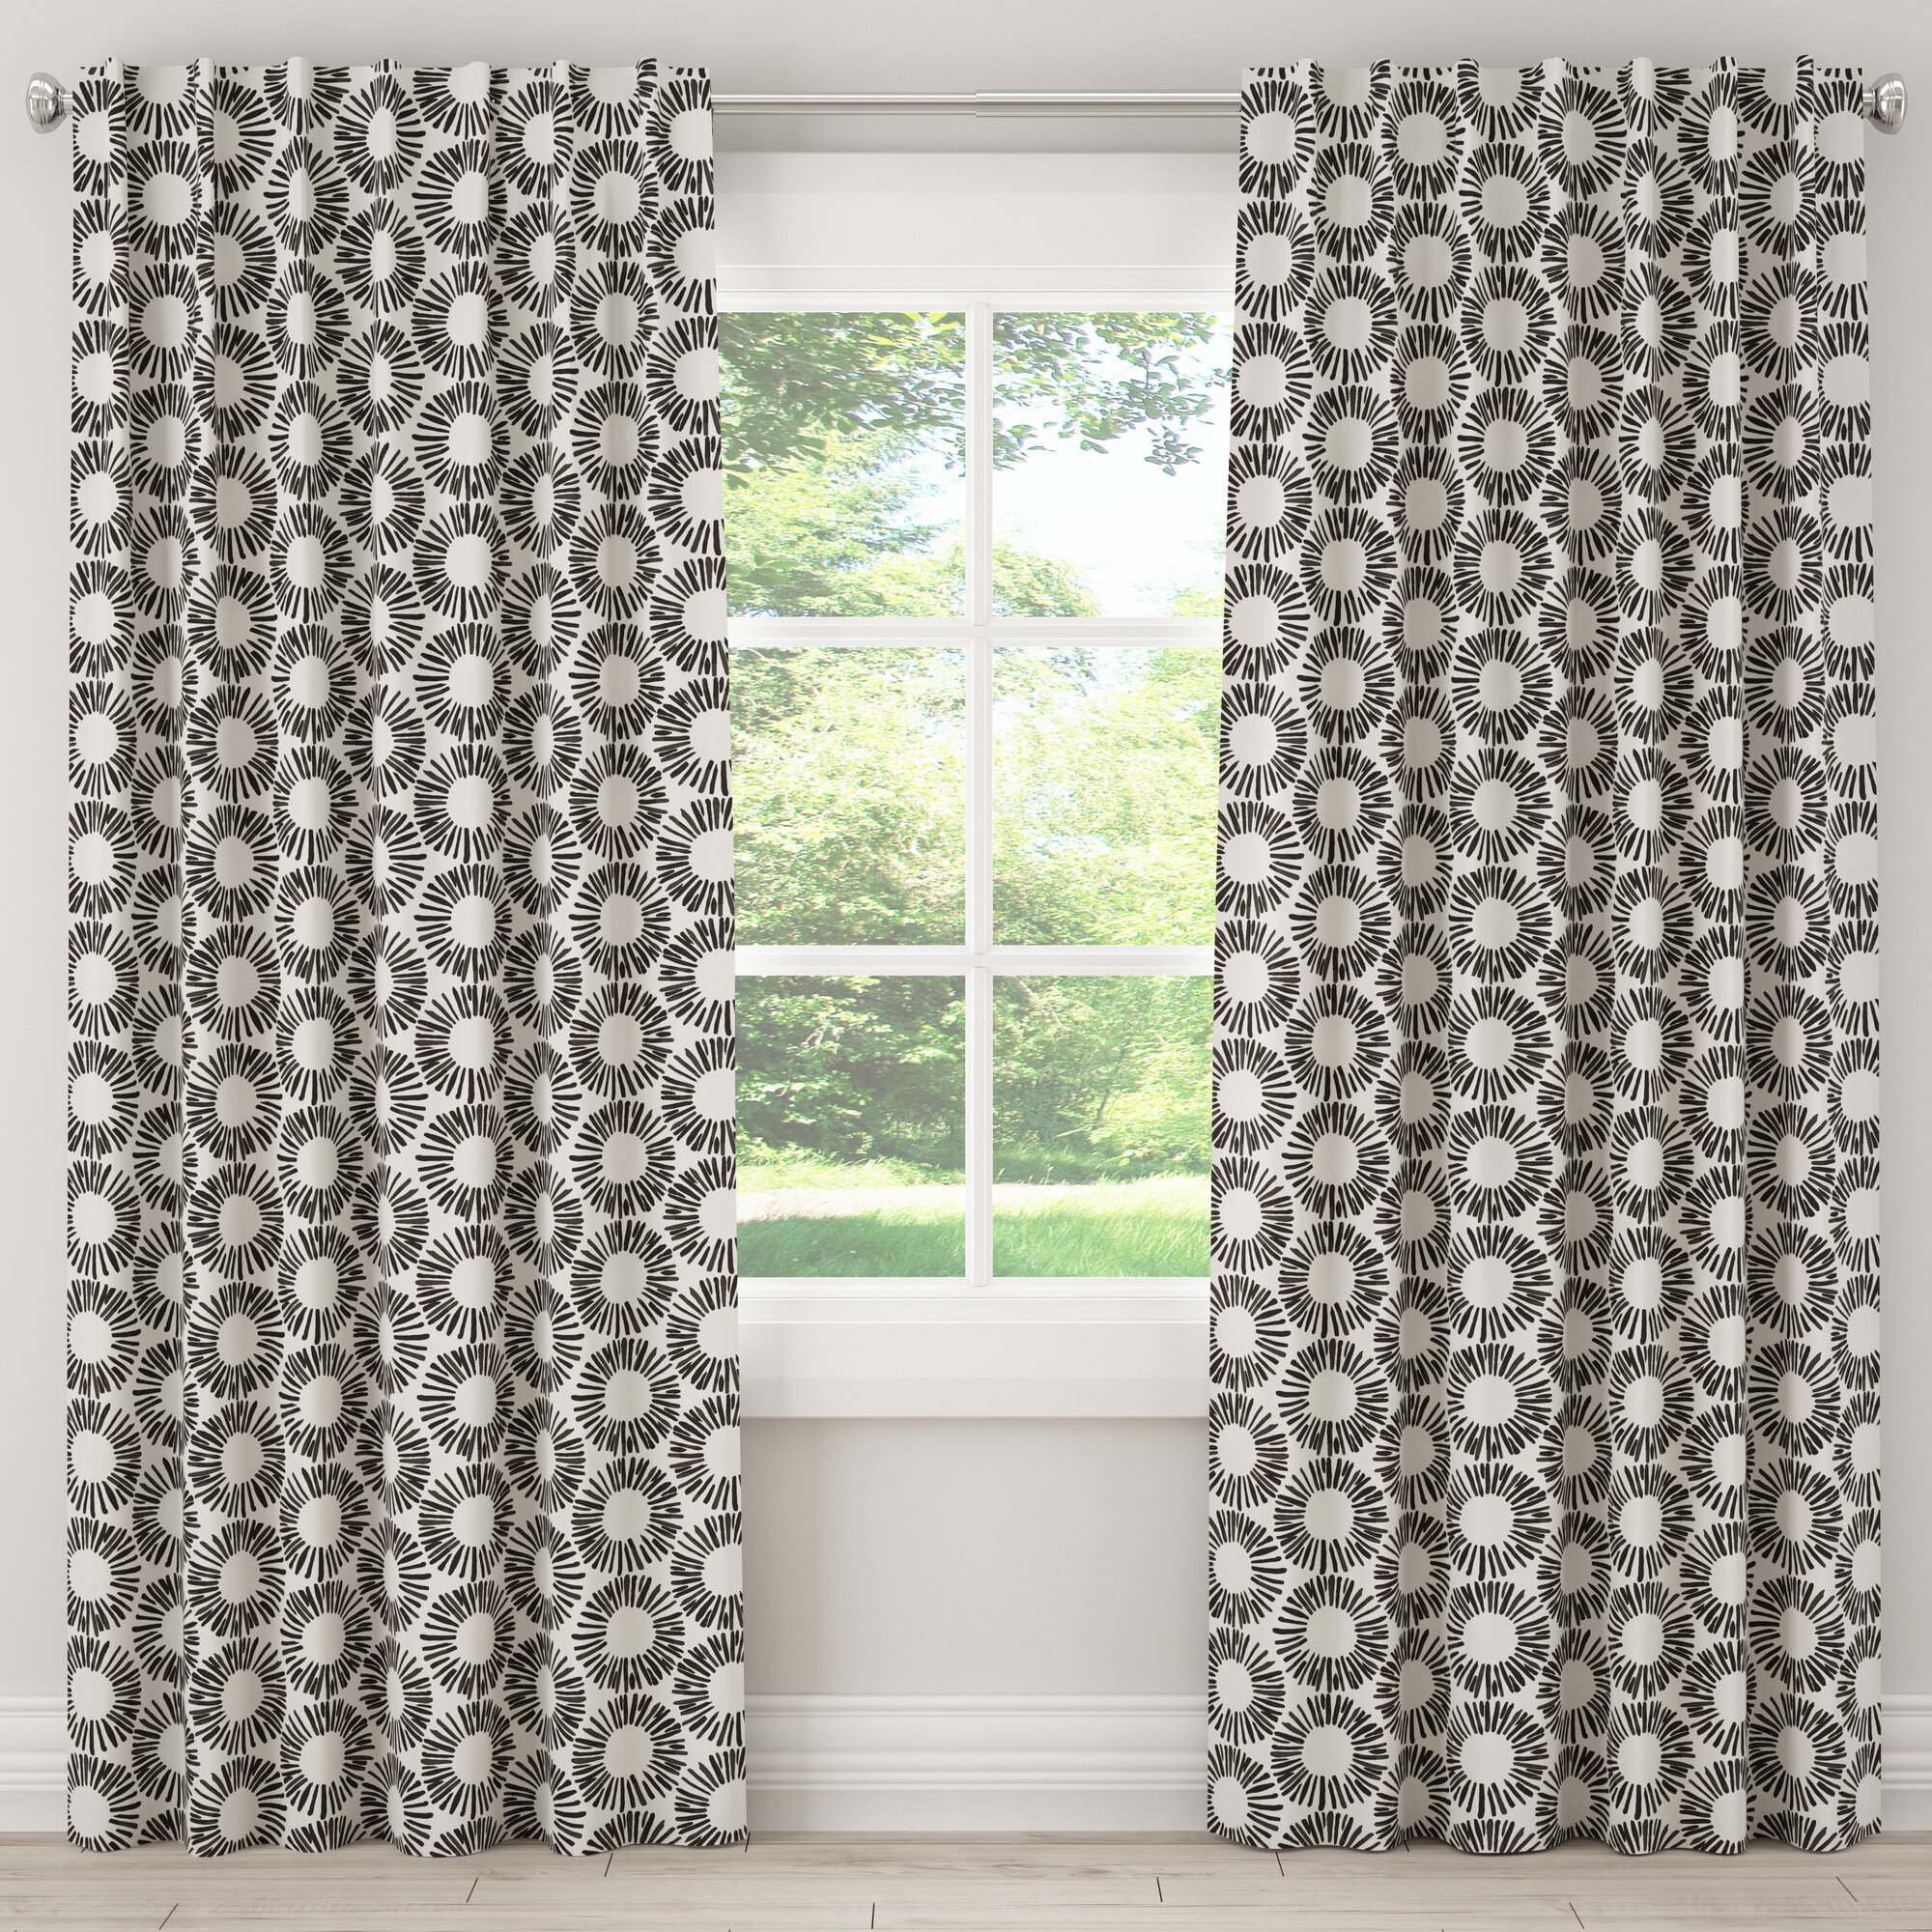 Details About Paraiso Unlined Geometric Room Darkening Rod Pocket Single Curtain Panel Within Nantahala Rod Pocket Room Darkening Patio Door Single Curtain Panels (View 10 of 20)